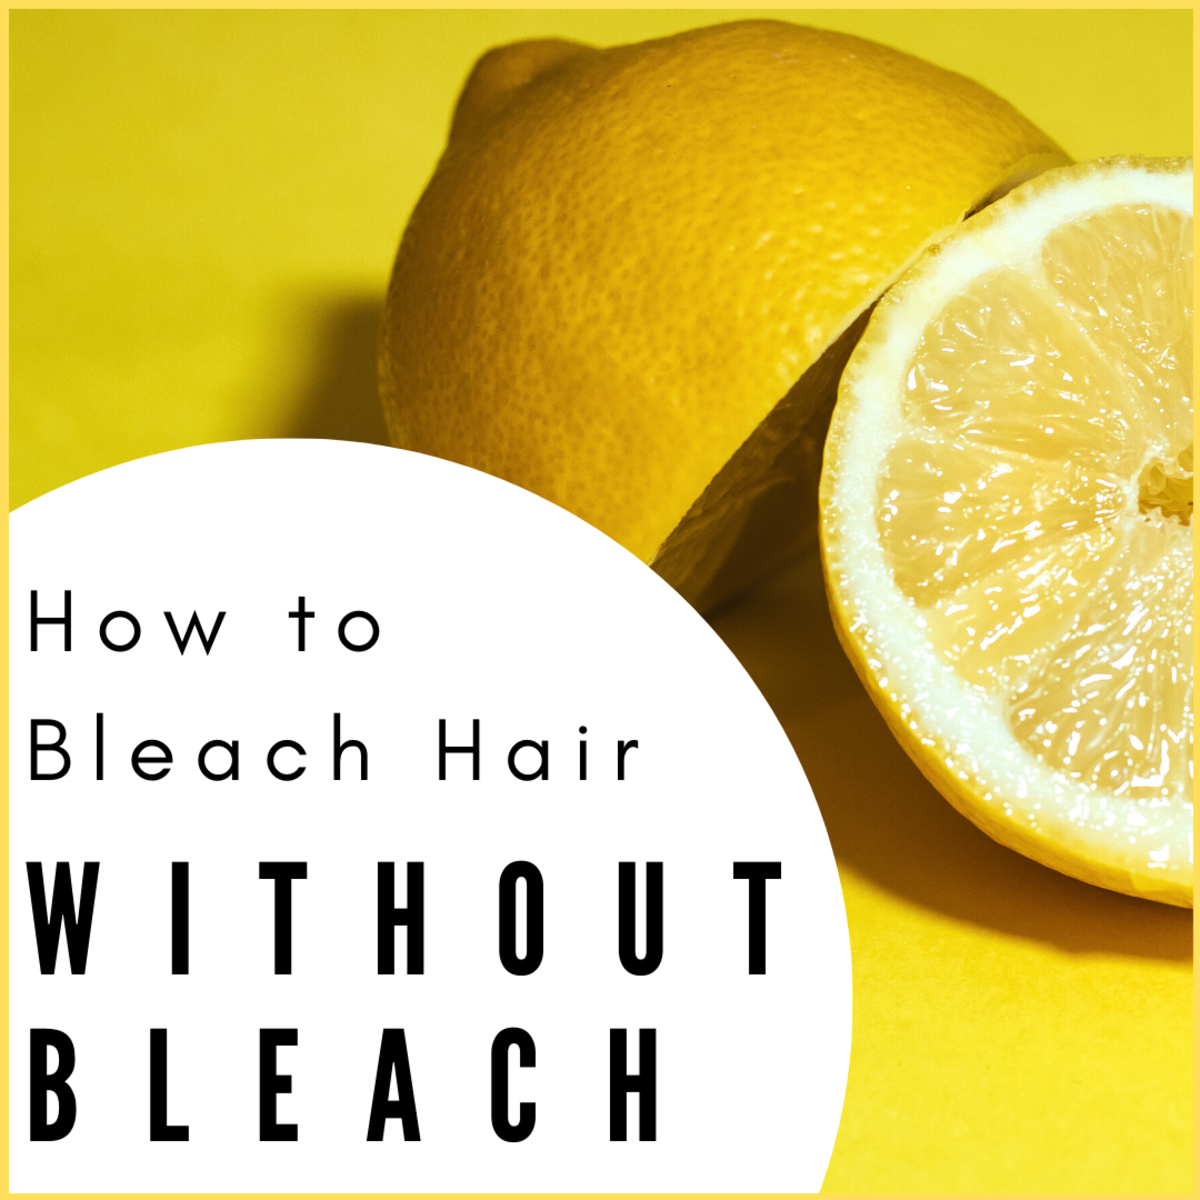 How to Lighten or Bleach Hair at Home Without Bleach